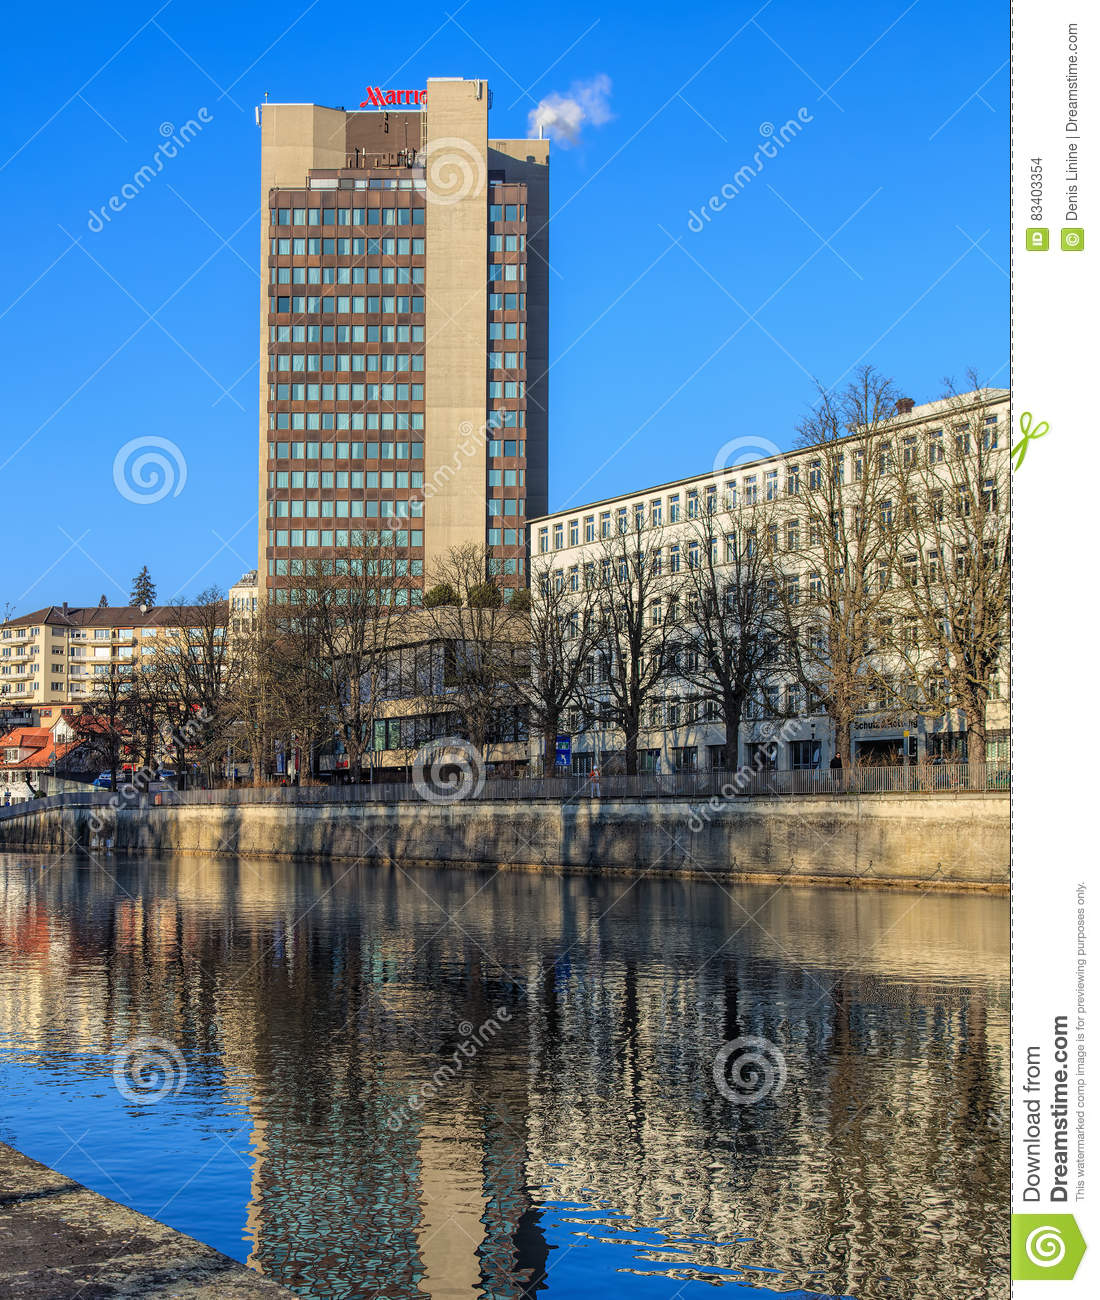 Hotel Marriott In Zurich Editorial Stock Image Image Of